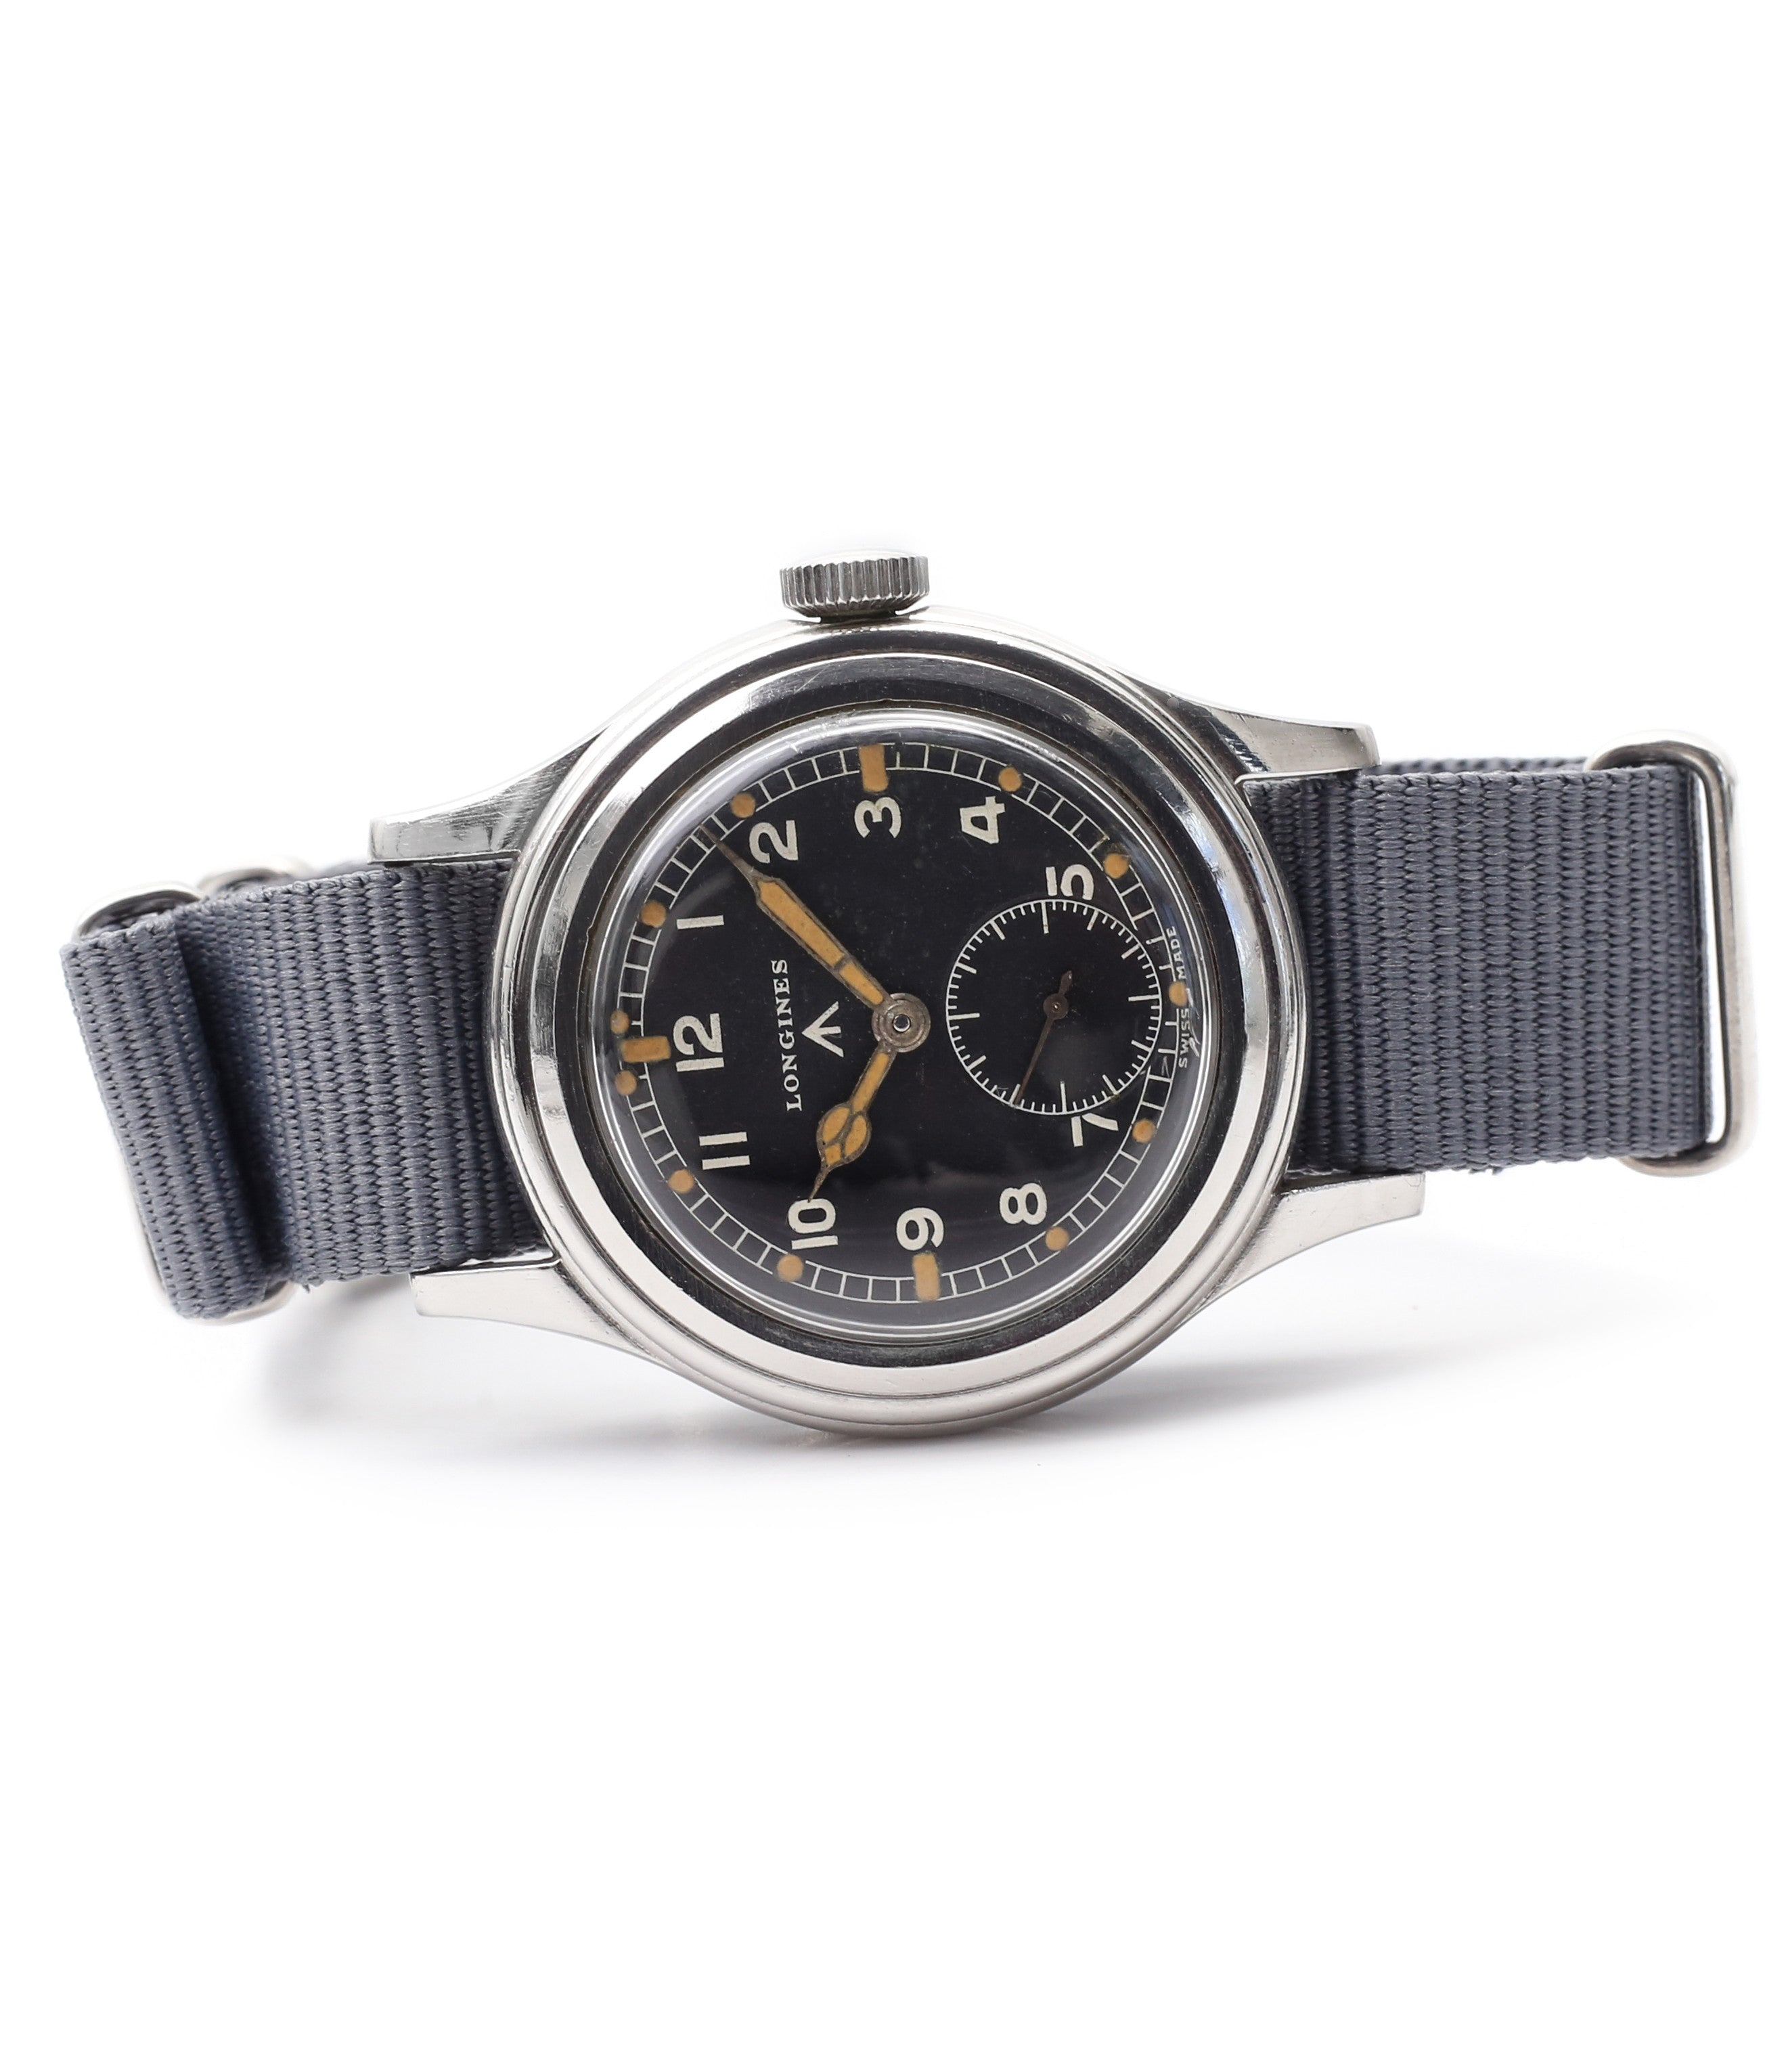 buy military vintage Longines WWW MoD British military F6870 for sale online at A Collected Man London vintage watches specialist